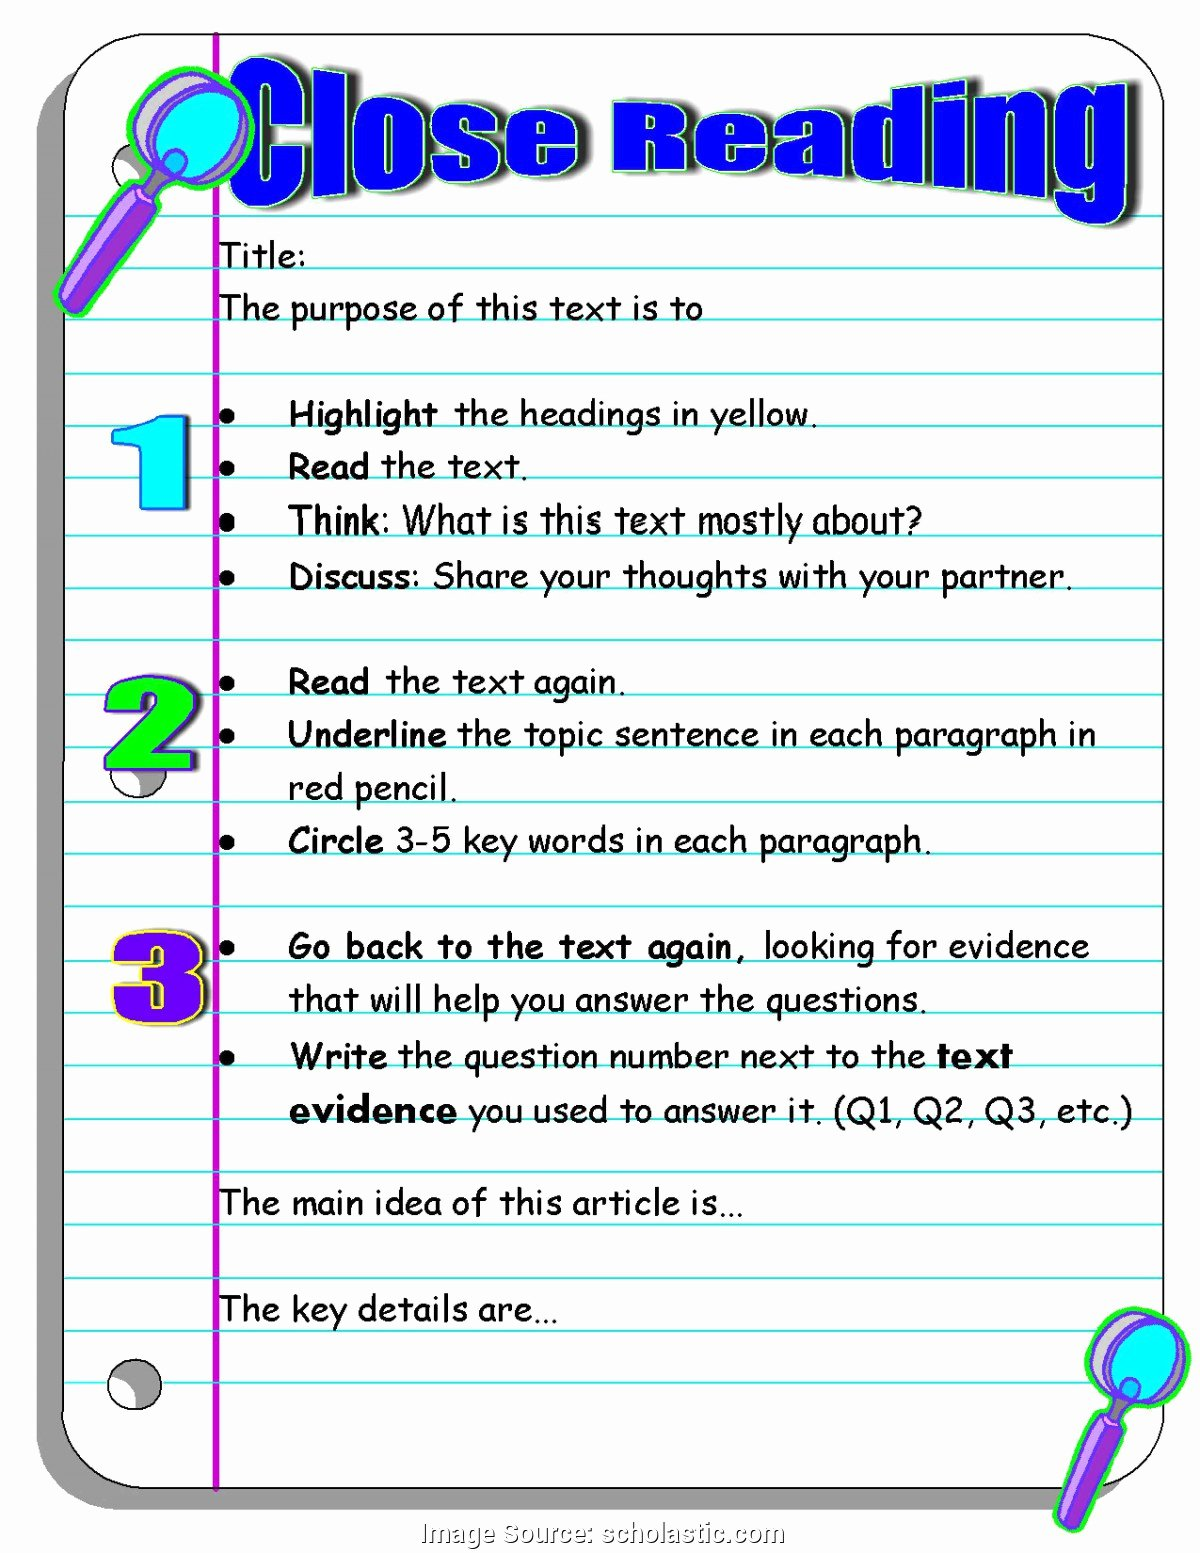 Close Reading Lesson Plan Template Beautiful Valuable Close Reading Lesson Plan 8th Grade Investigating